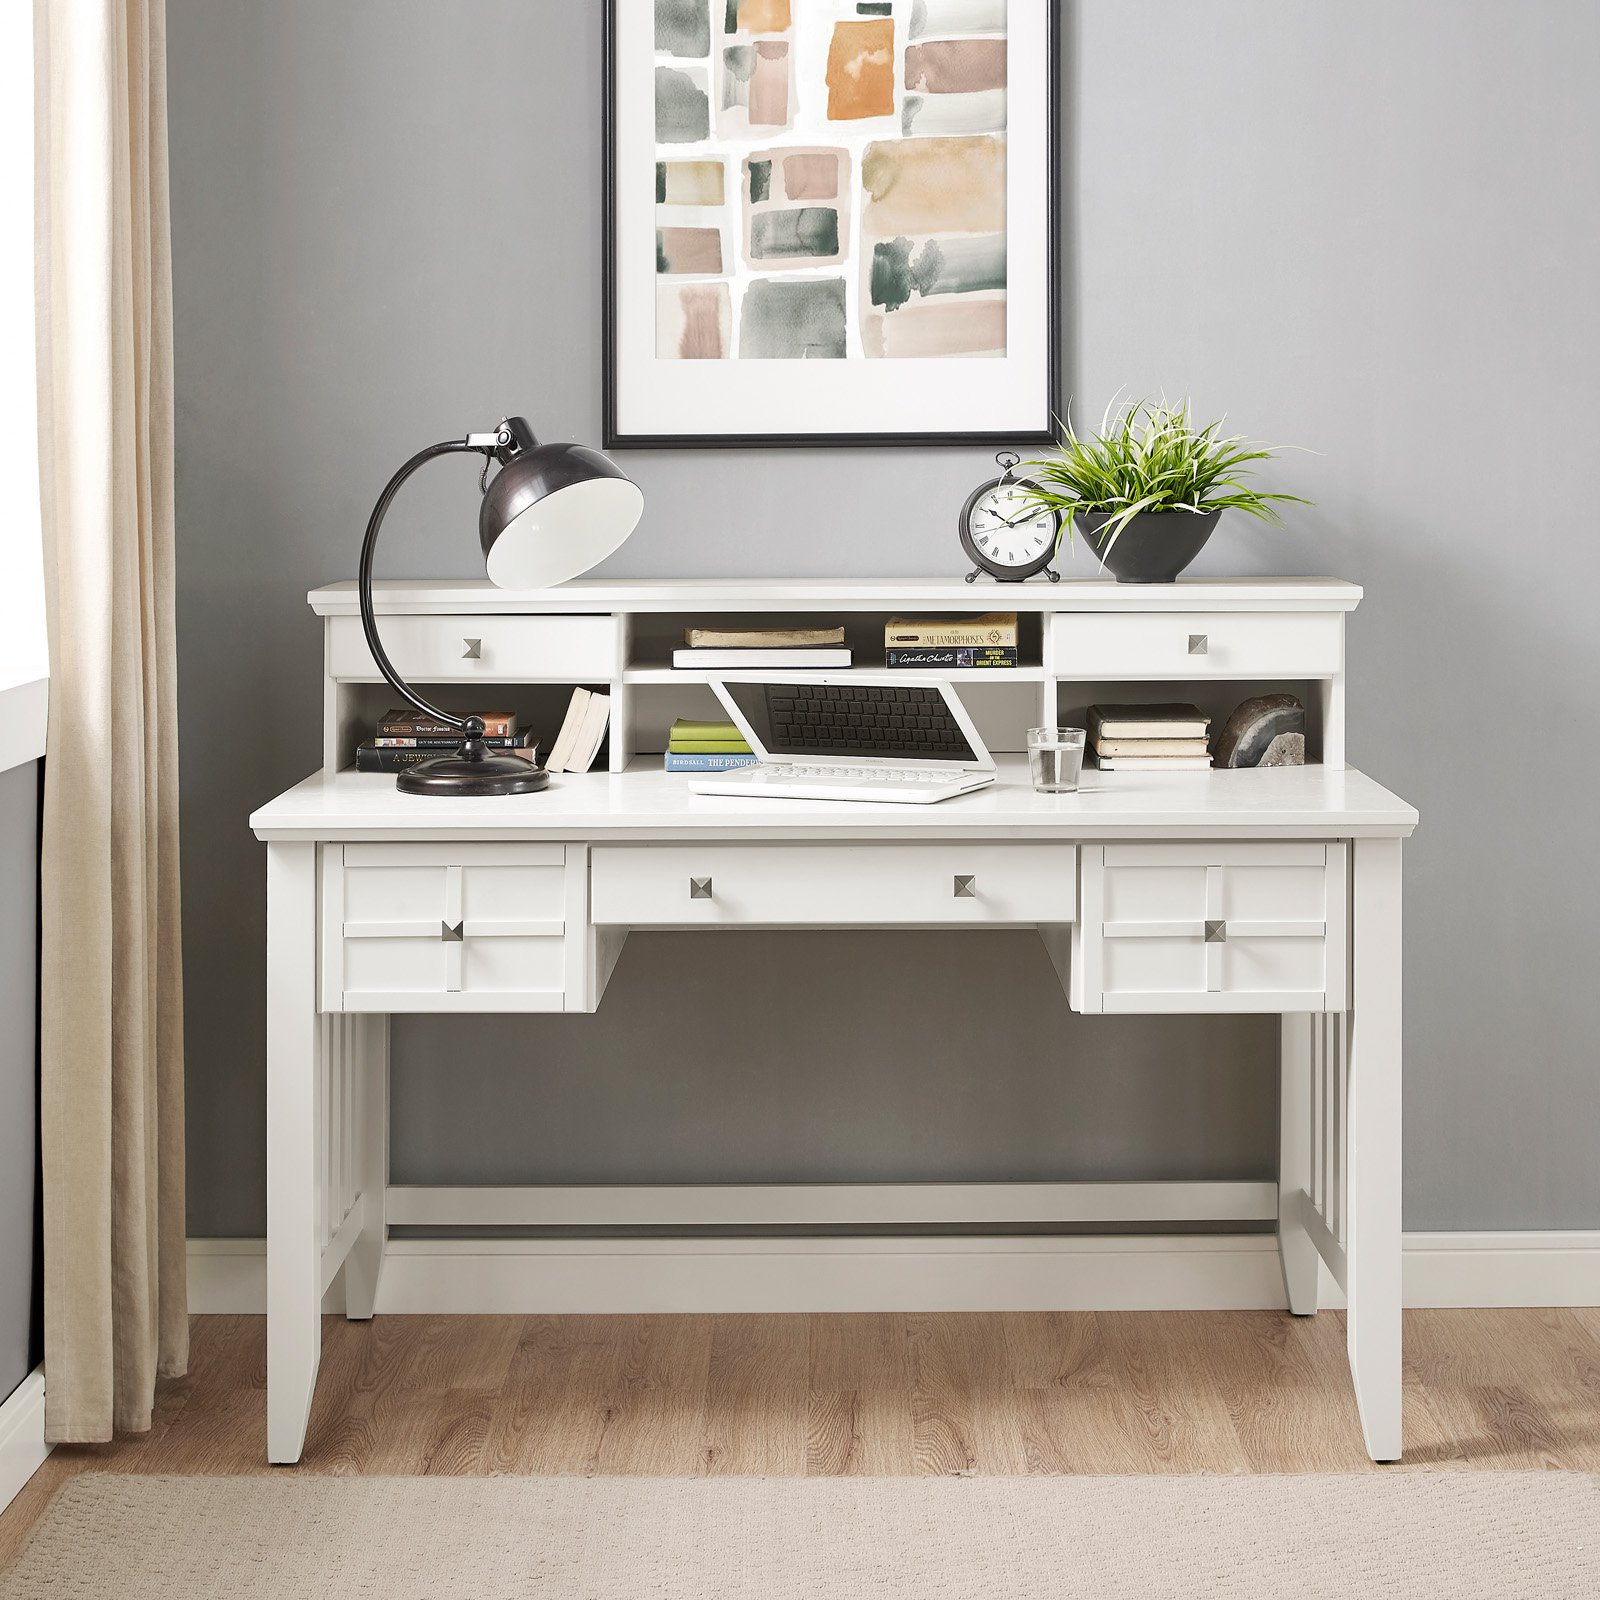 Adler Computer Desk with Hutch in White Finish